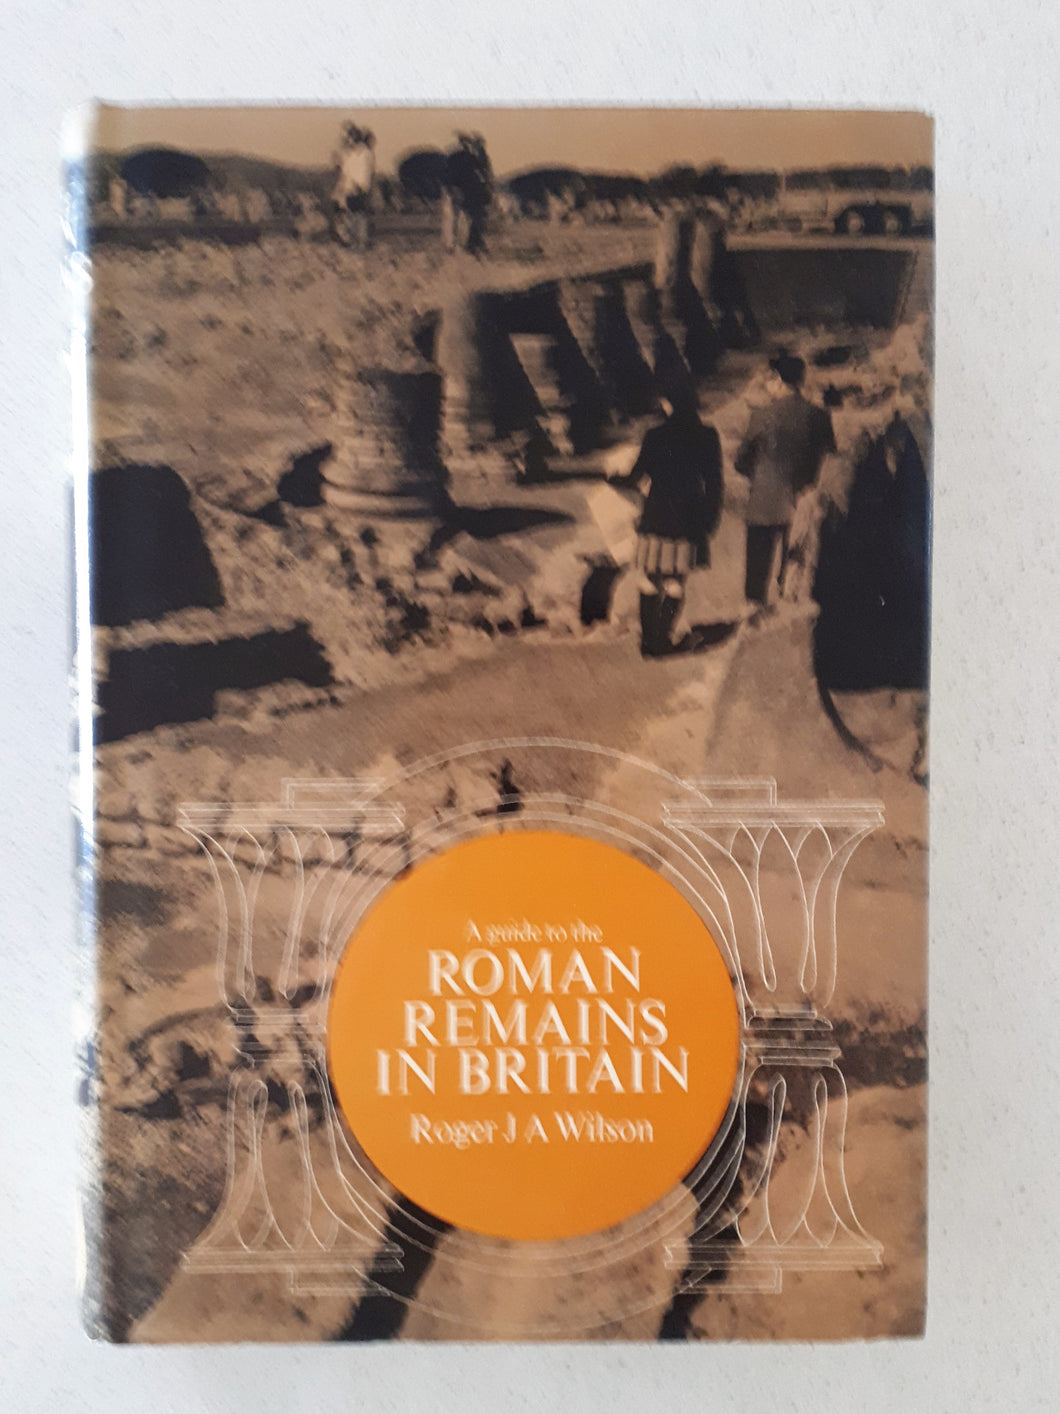 A Guide to the Roman Remains In Britain by Roger J A Wilson